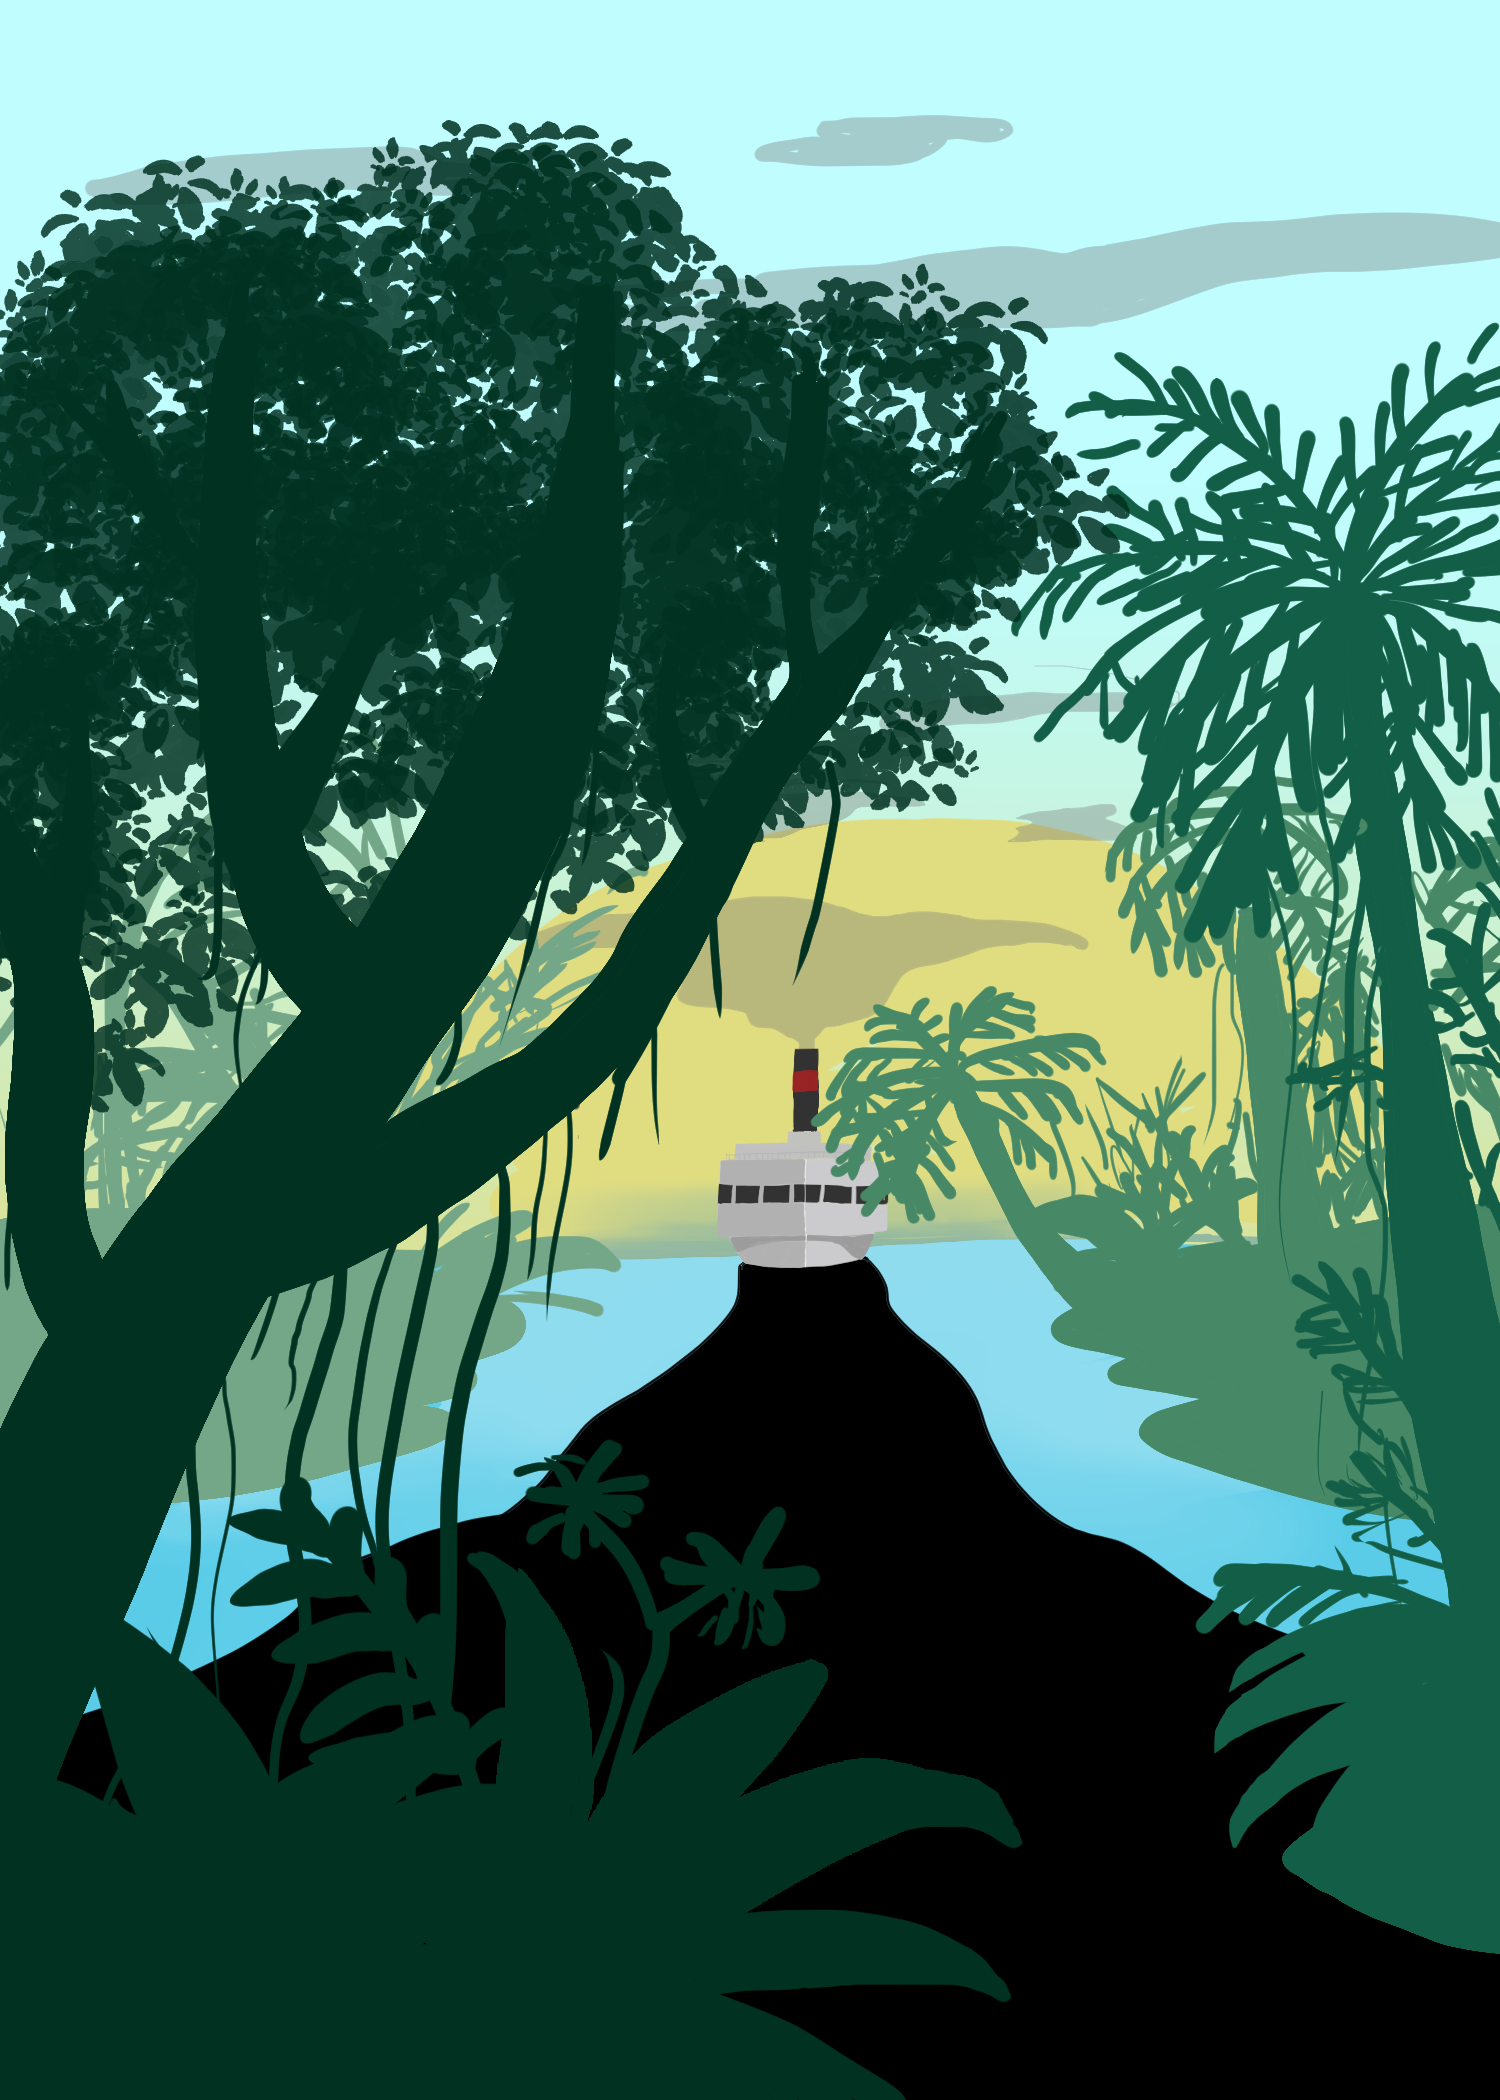 Oil spills in the Niger Delta cause farmers and fishermen to loose their livelyhoods